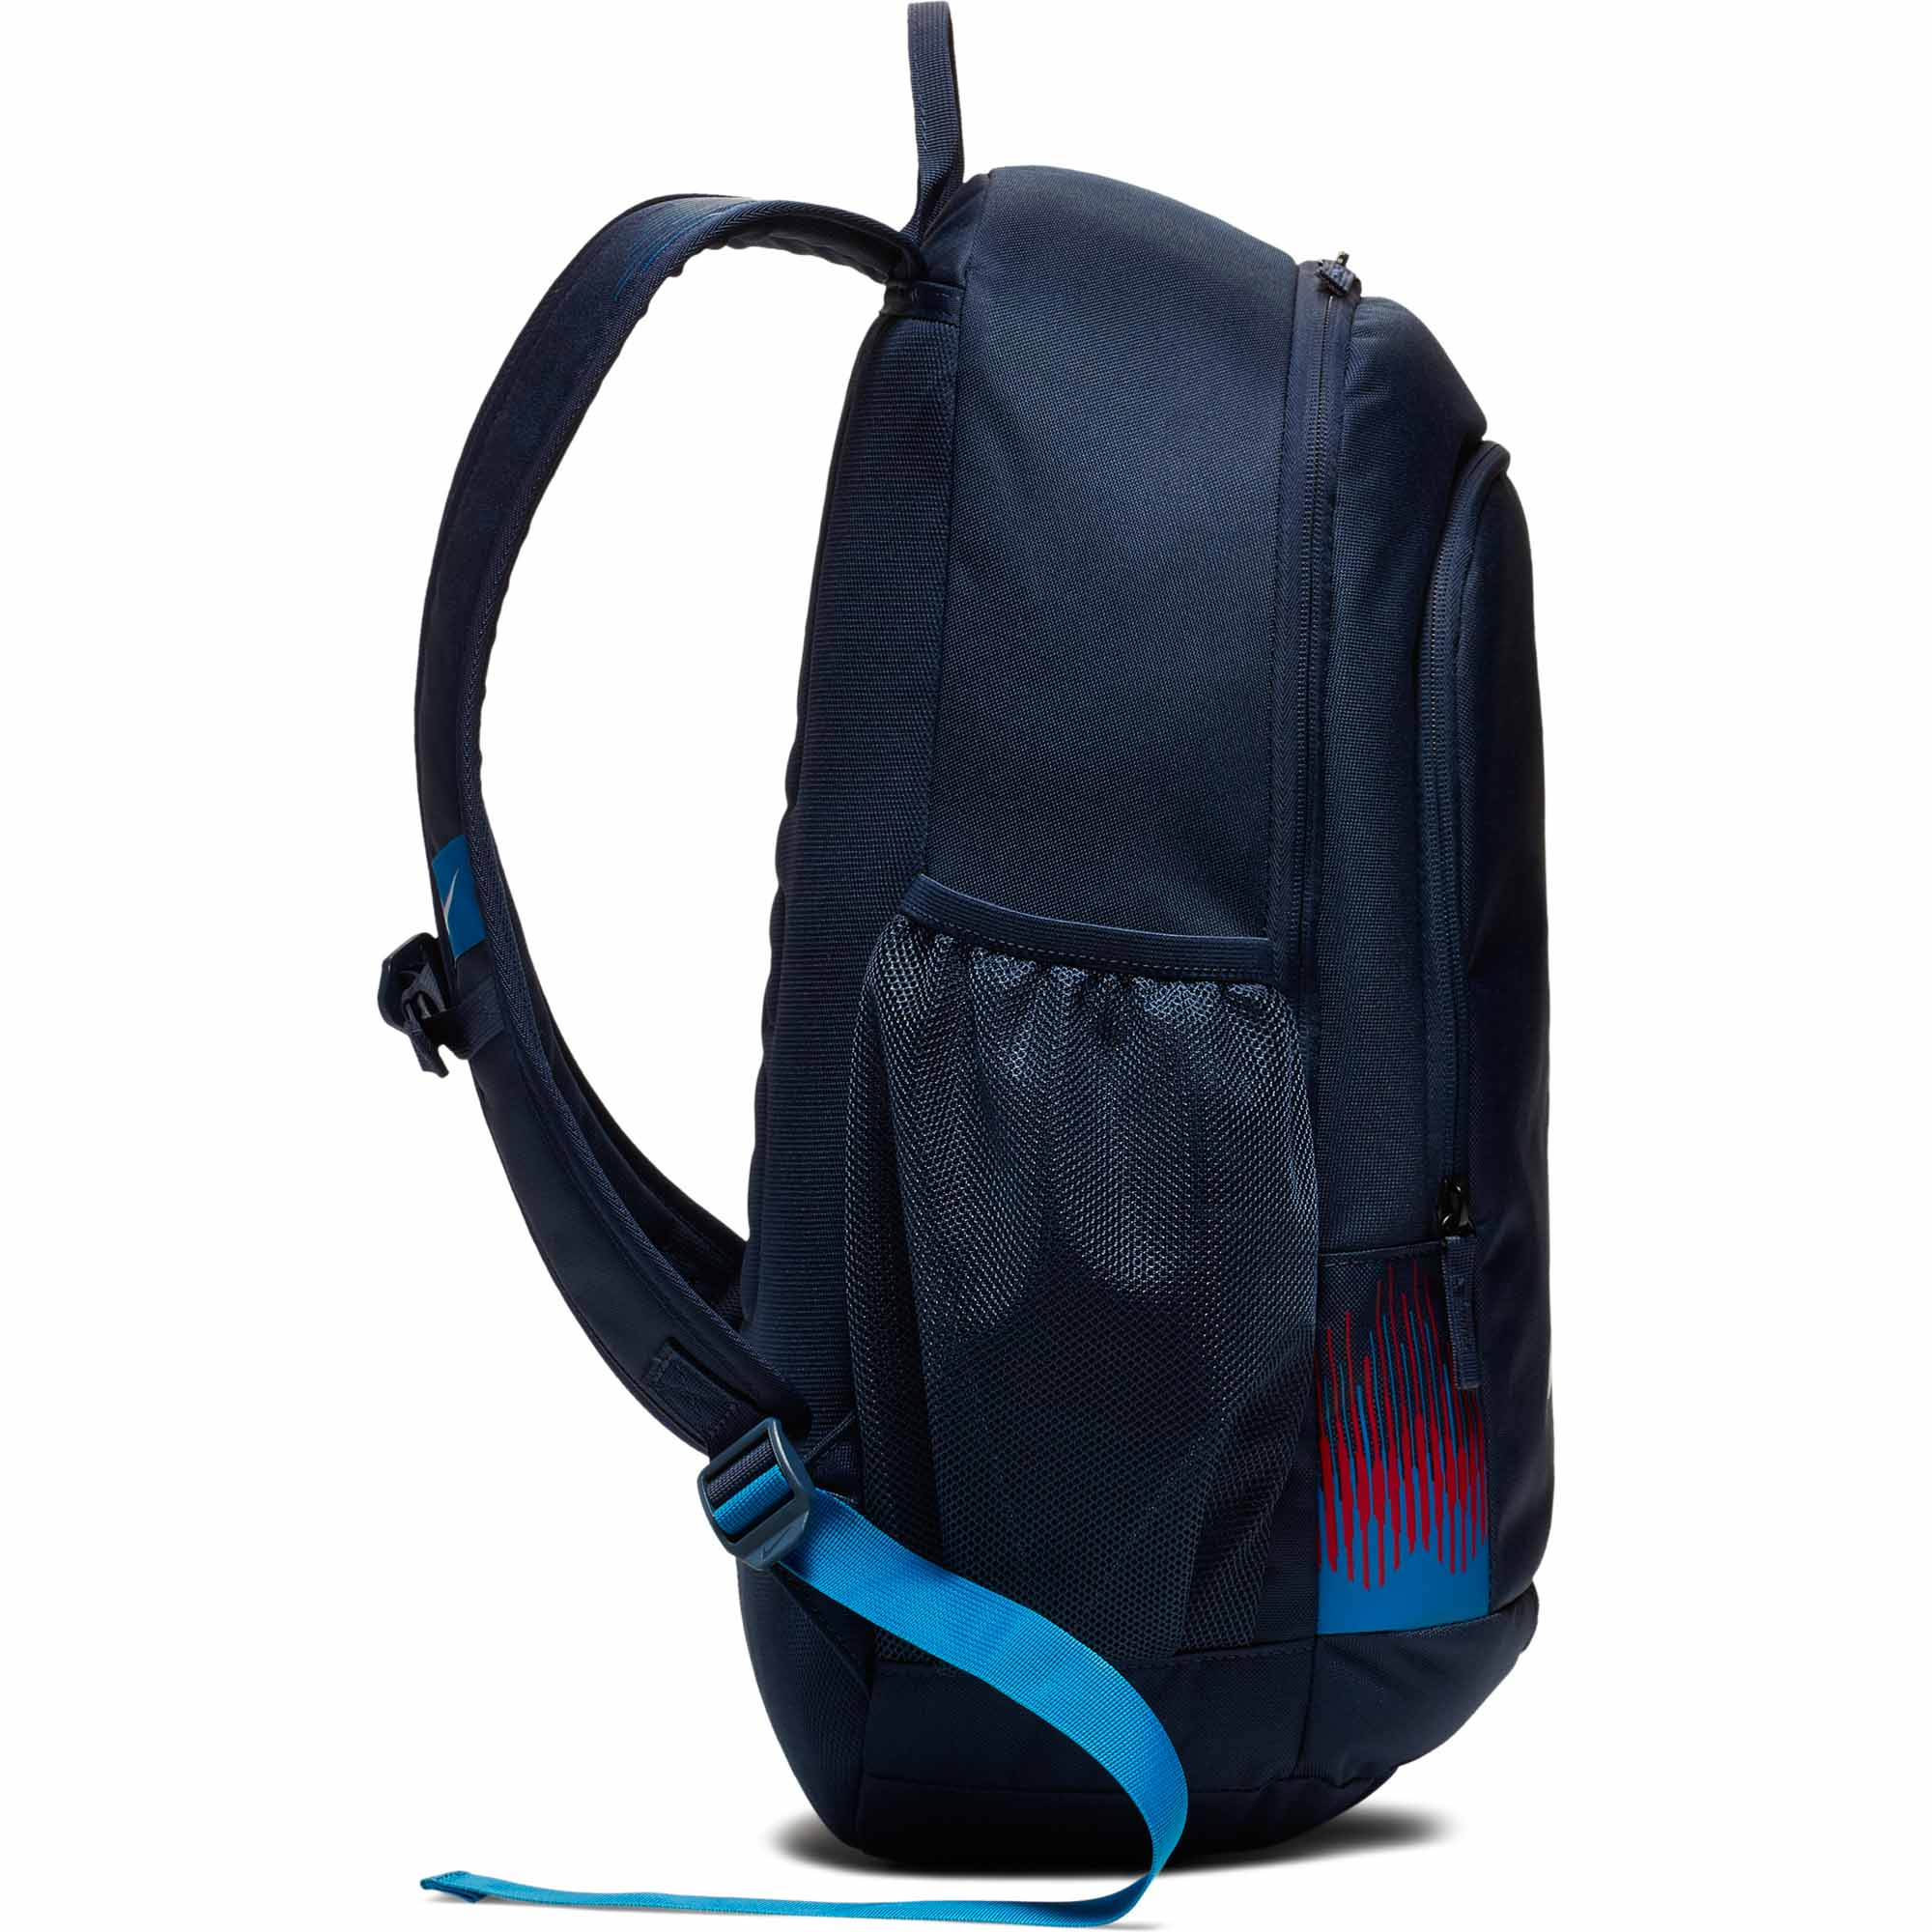 a92820856e Nike USA Stadium Backpack - Midnight Navy - SoccerPro